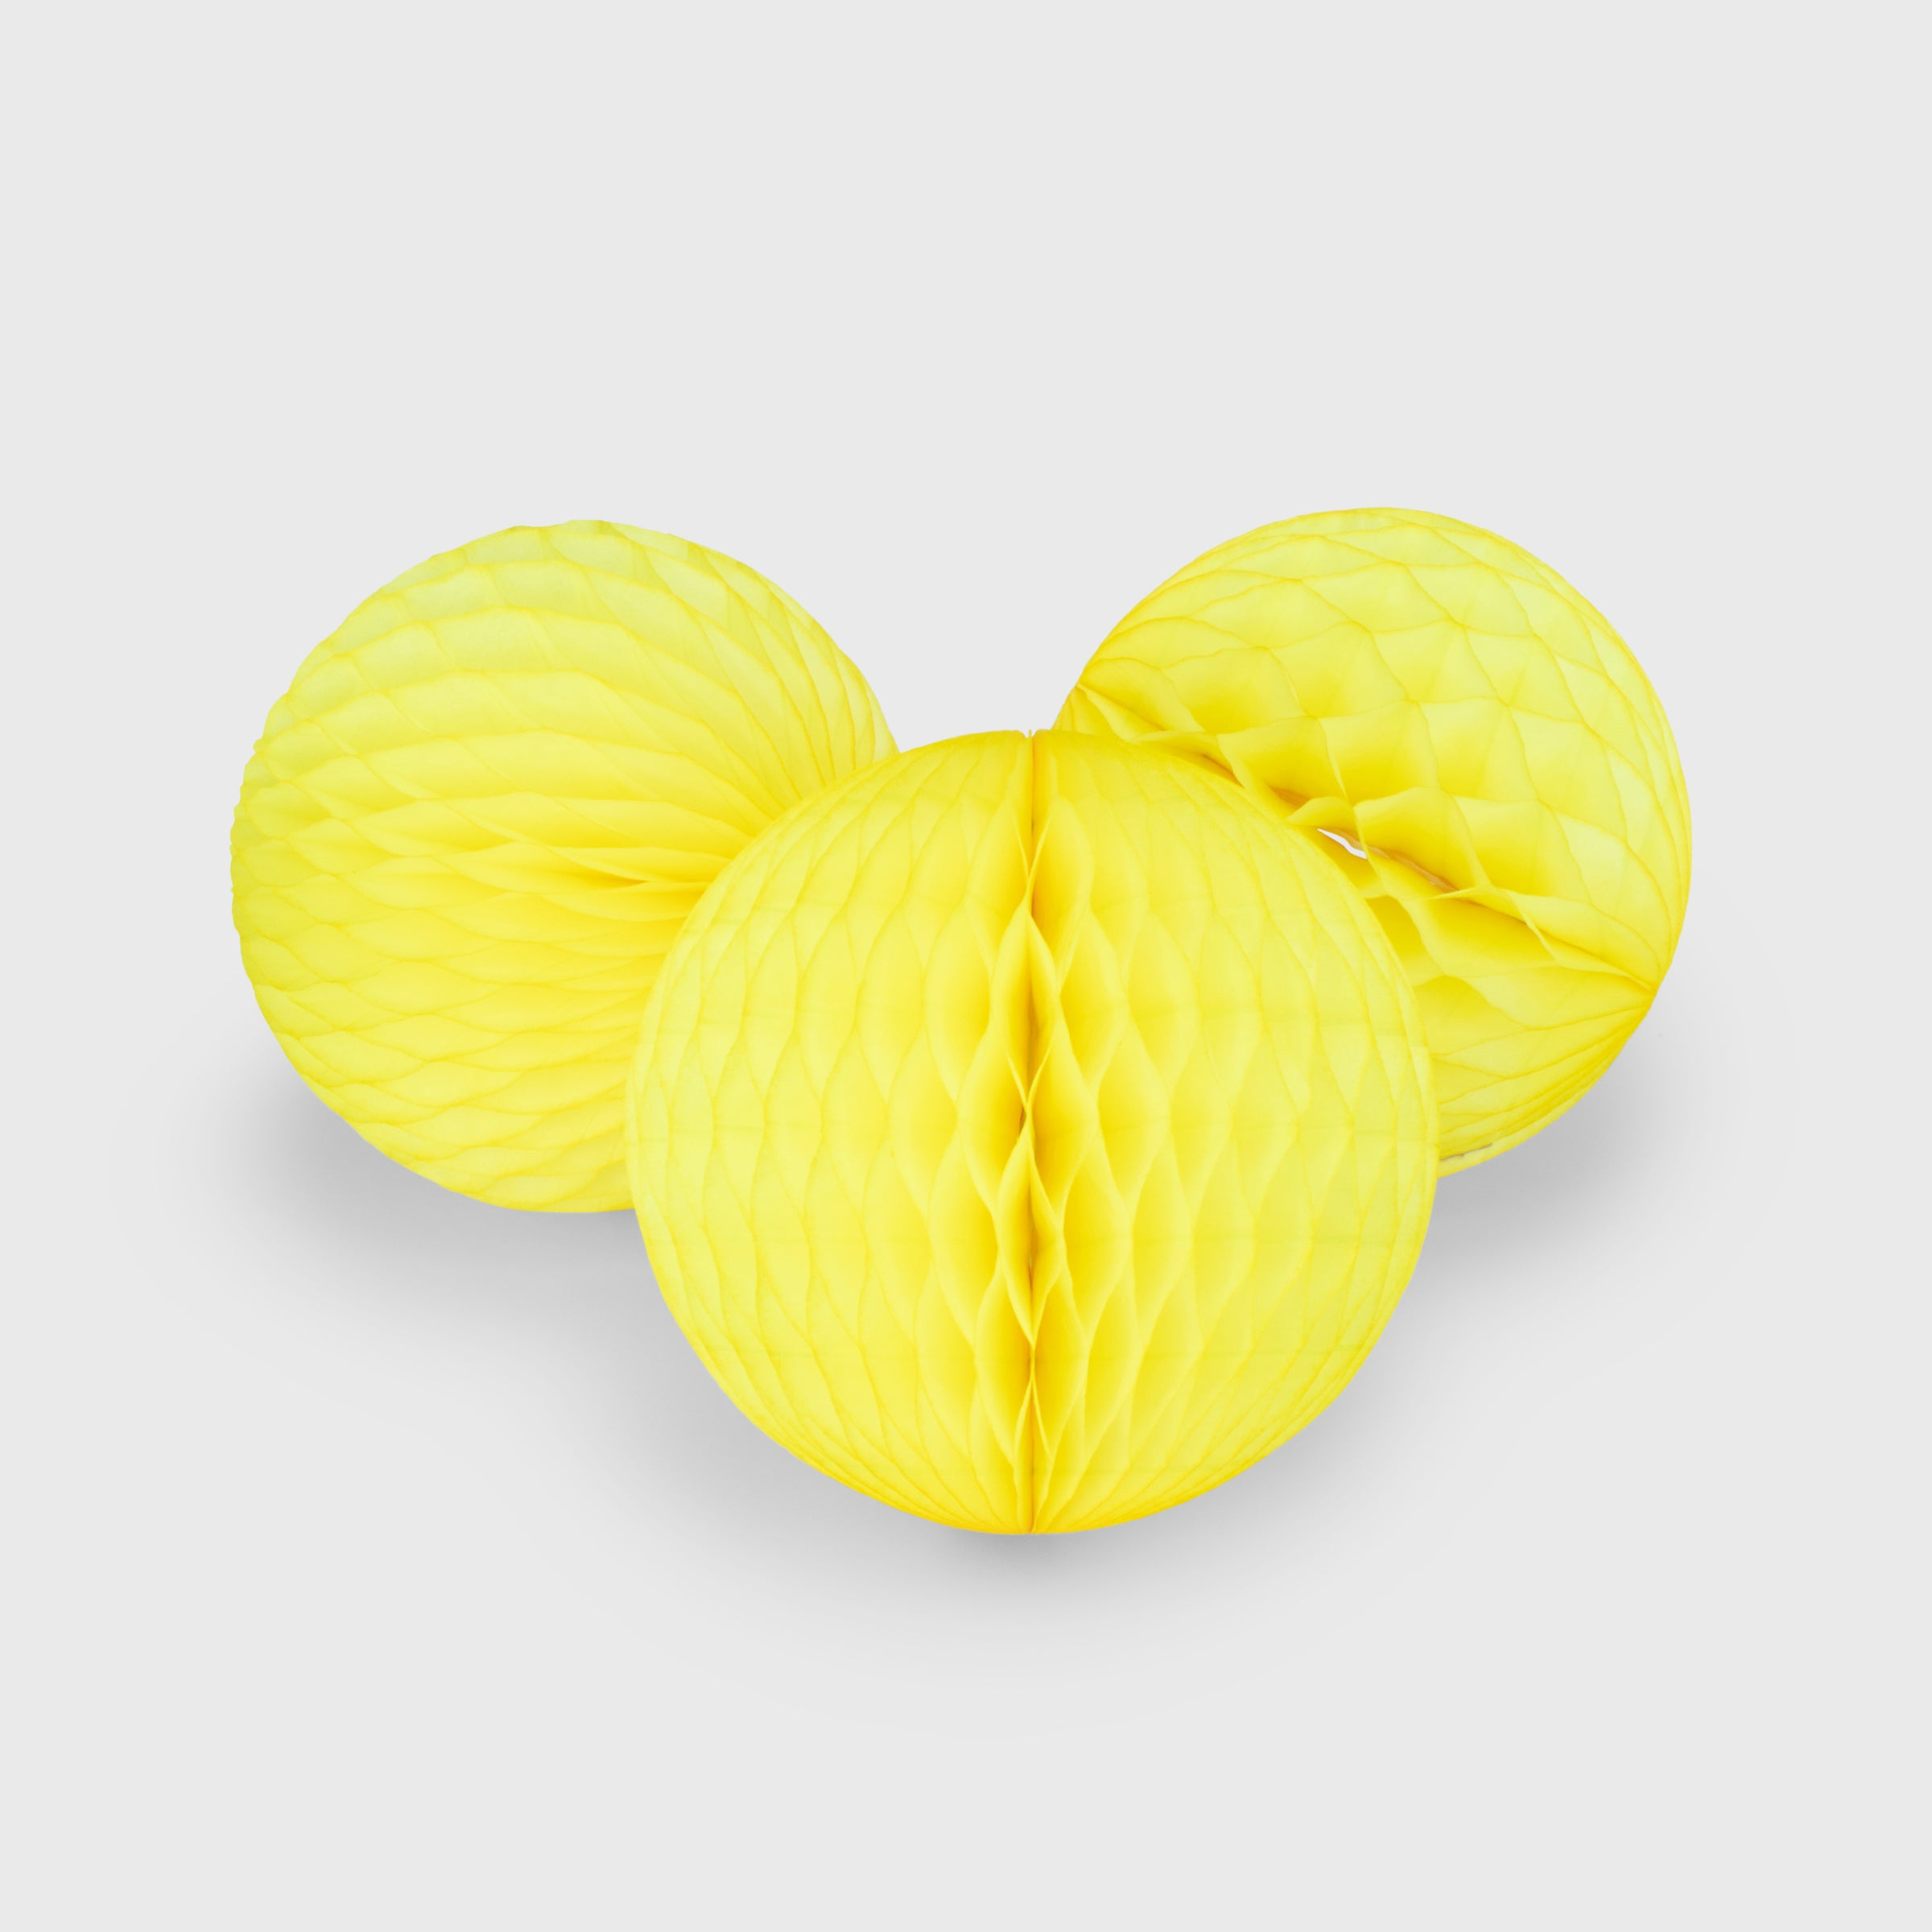 Honeycomb Ball 15 cm, Lemon Sherbet 3 pack